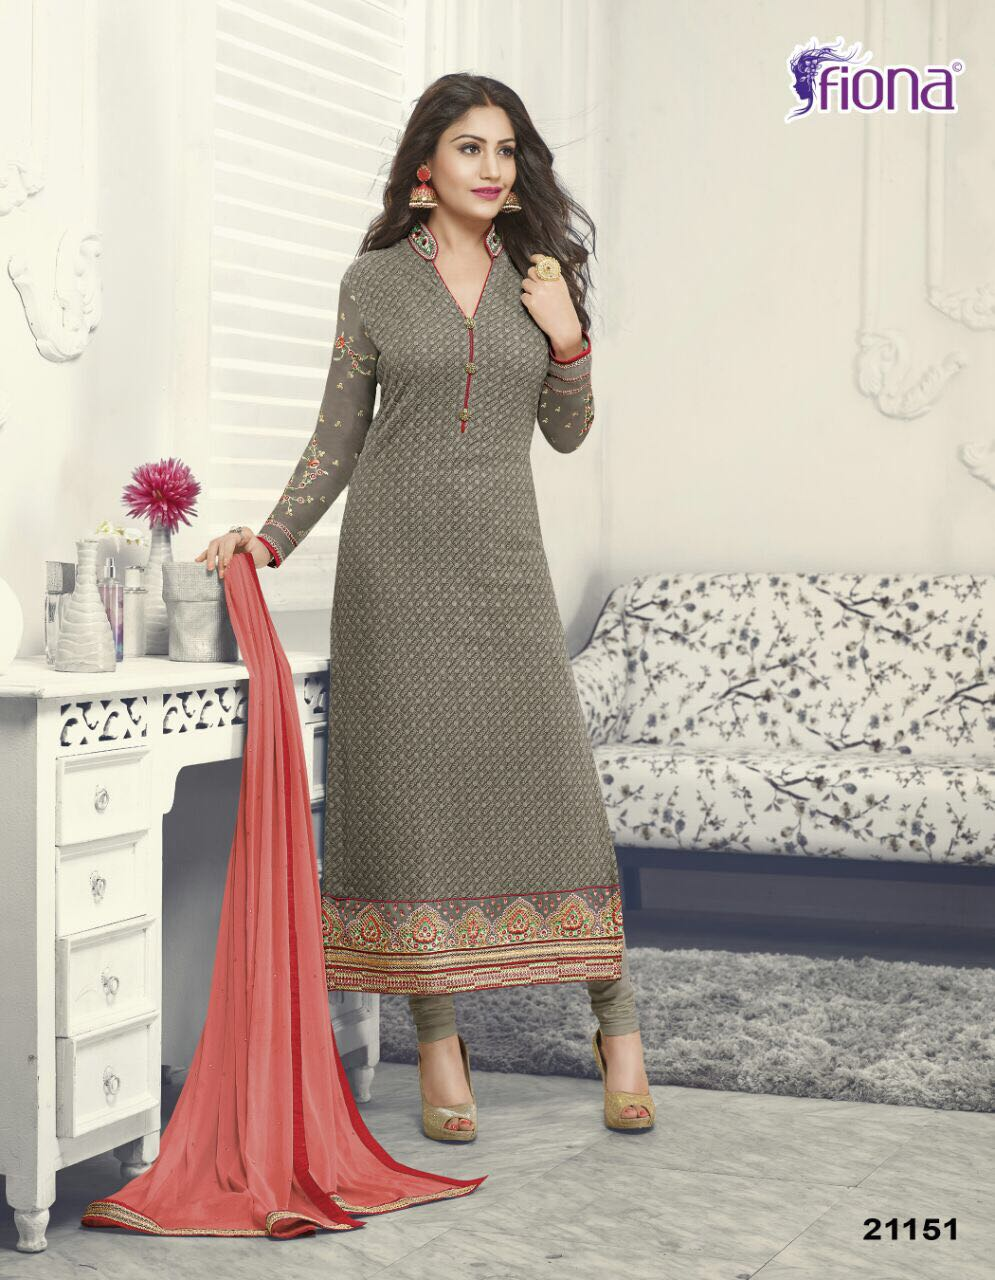 Anika Vol 2 – Latest New Designer Straight Cuit Salwar Suit